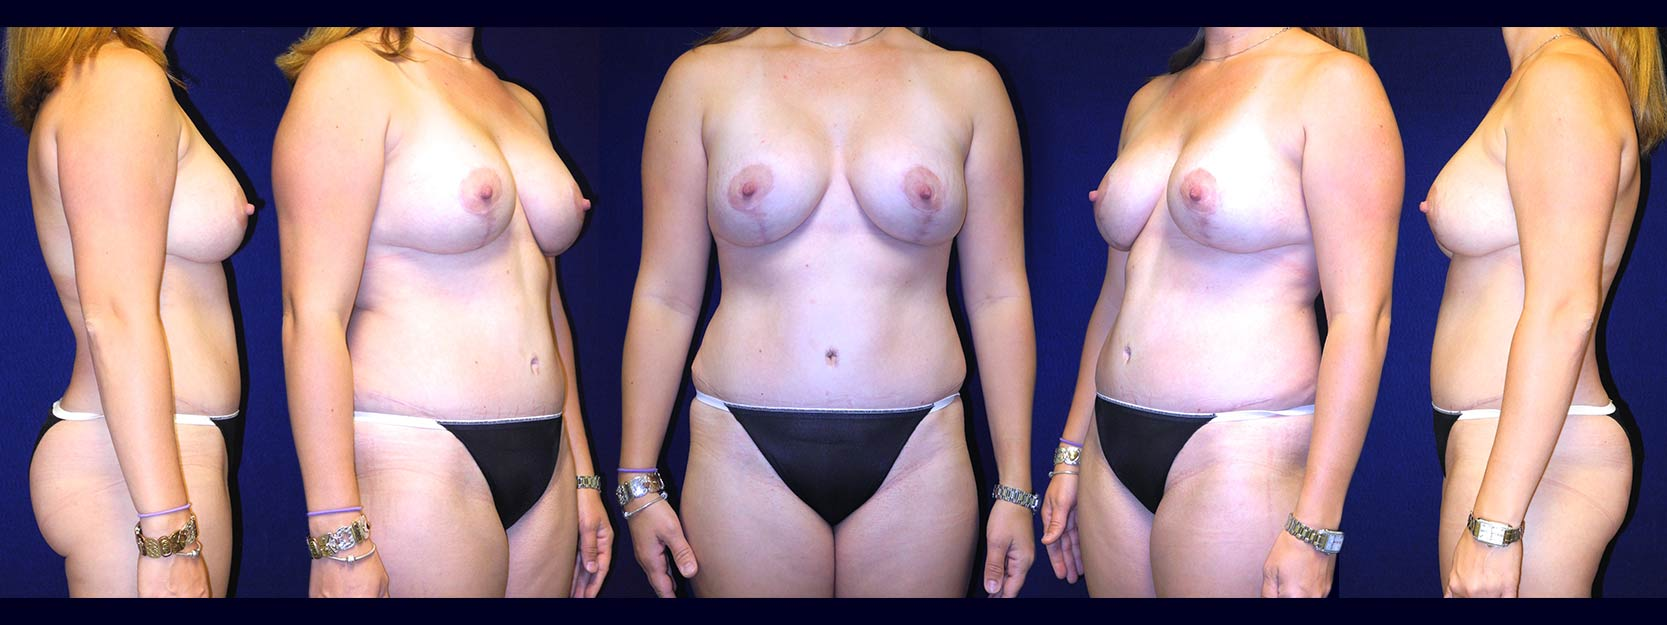 Full View - Breast Augmentation and Tummy Tuck